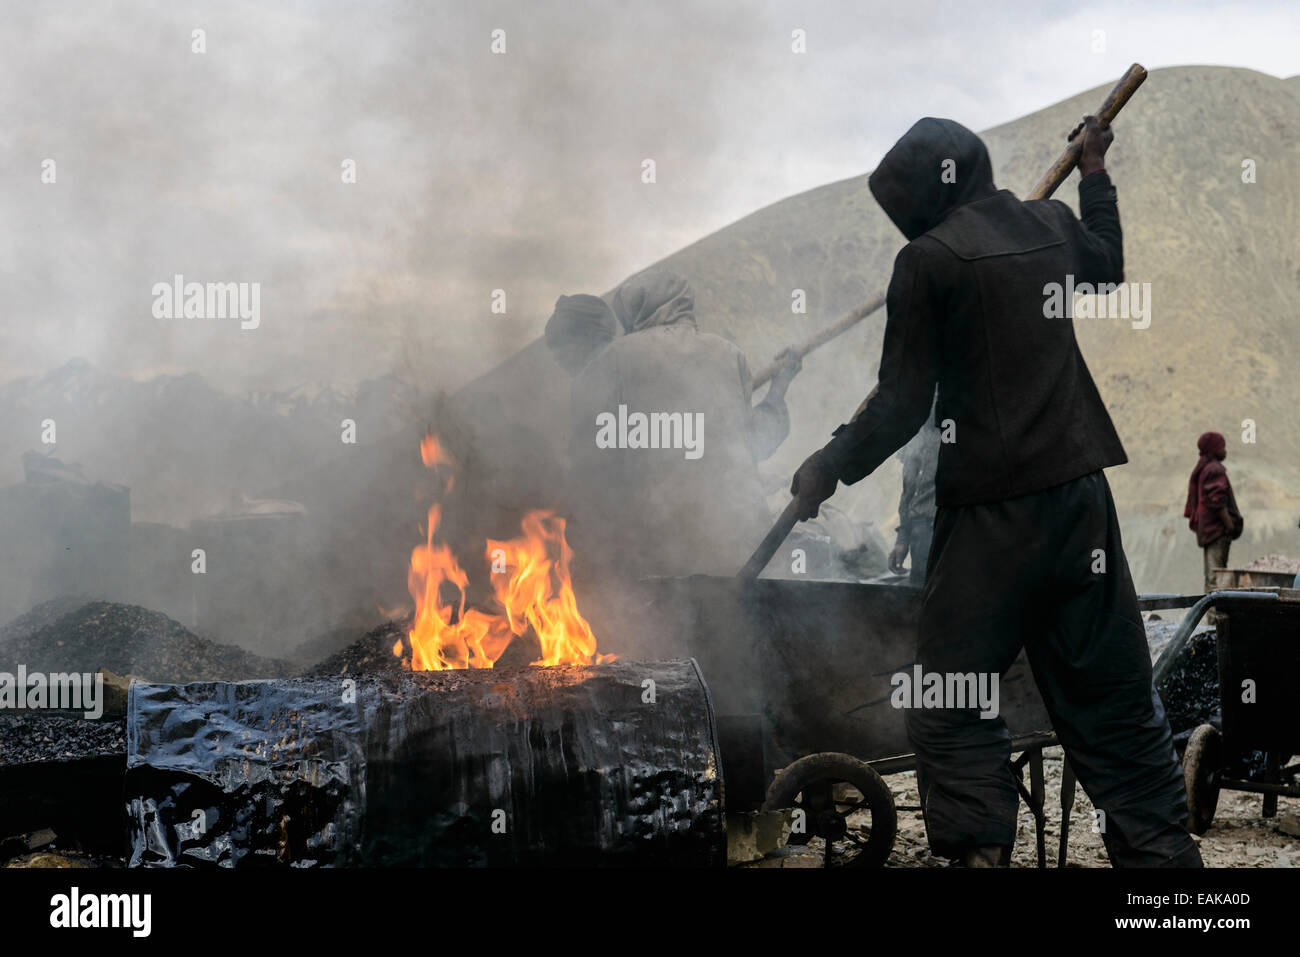 Road construction works, done under very unhealthy conditions for the workers, Lamayuru, Ladakh, Jammu and Kashmir, - Stock Image